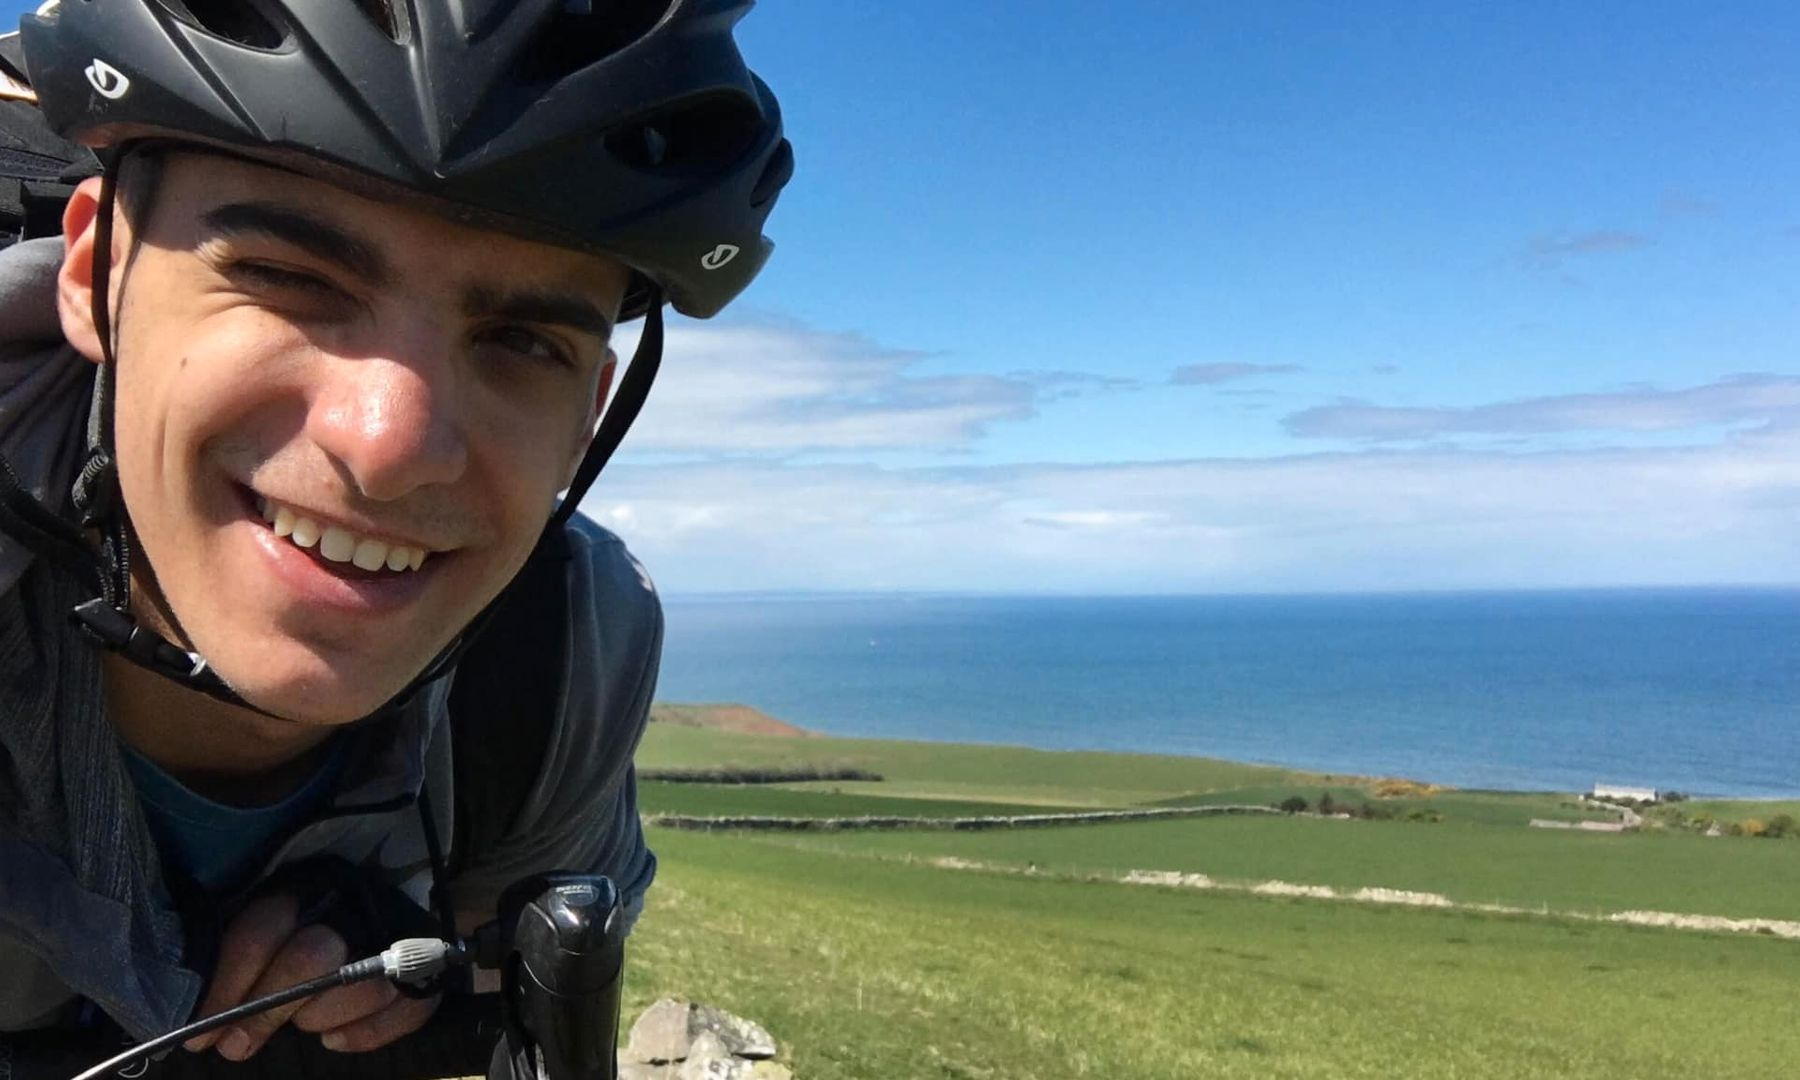 Kleon taking a selfie while on his bike with pastures and sea behind him